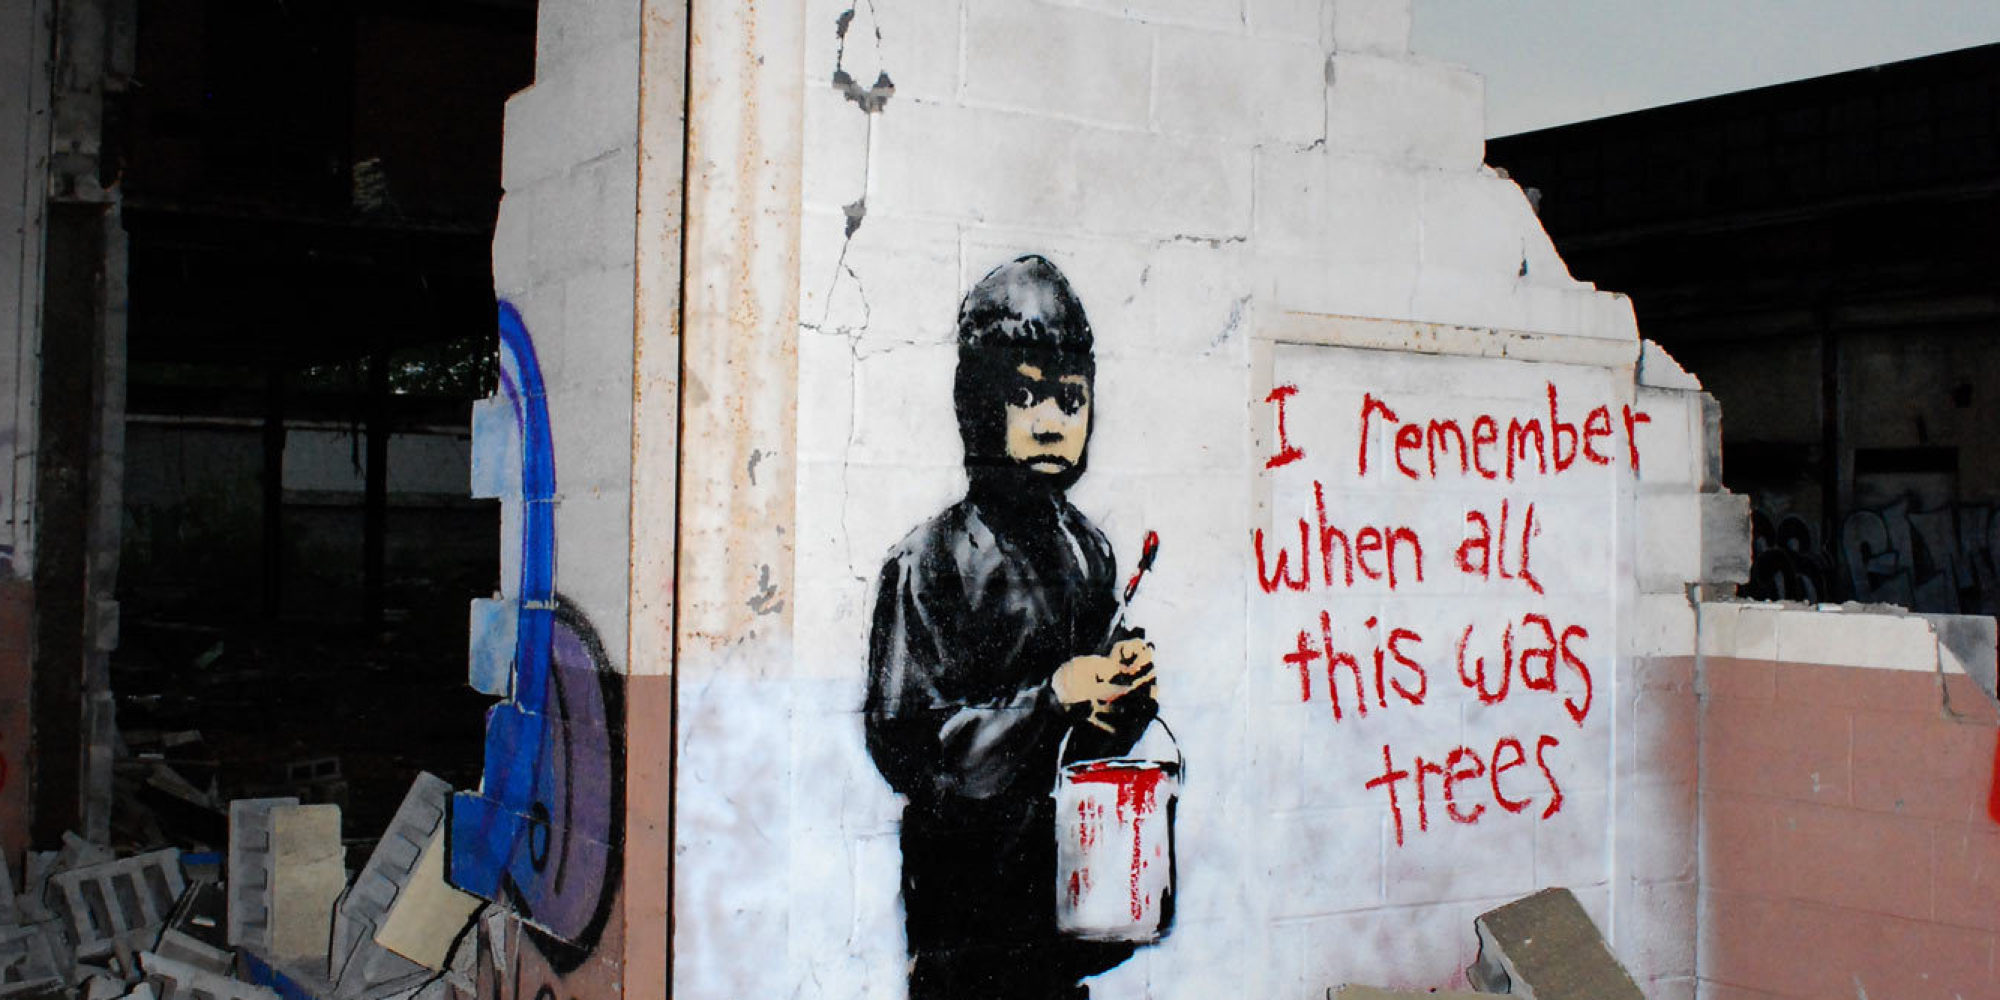 Detroit Gallery To Sell Controversial Banksy Mural It ...